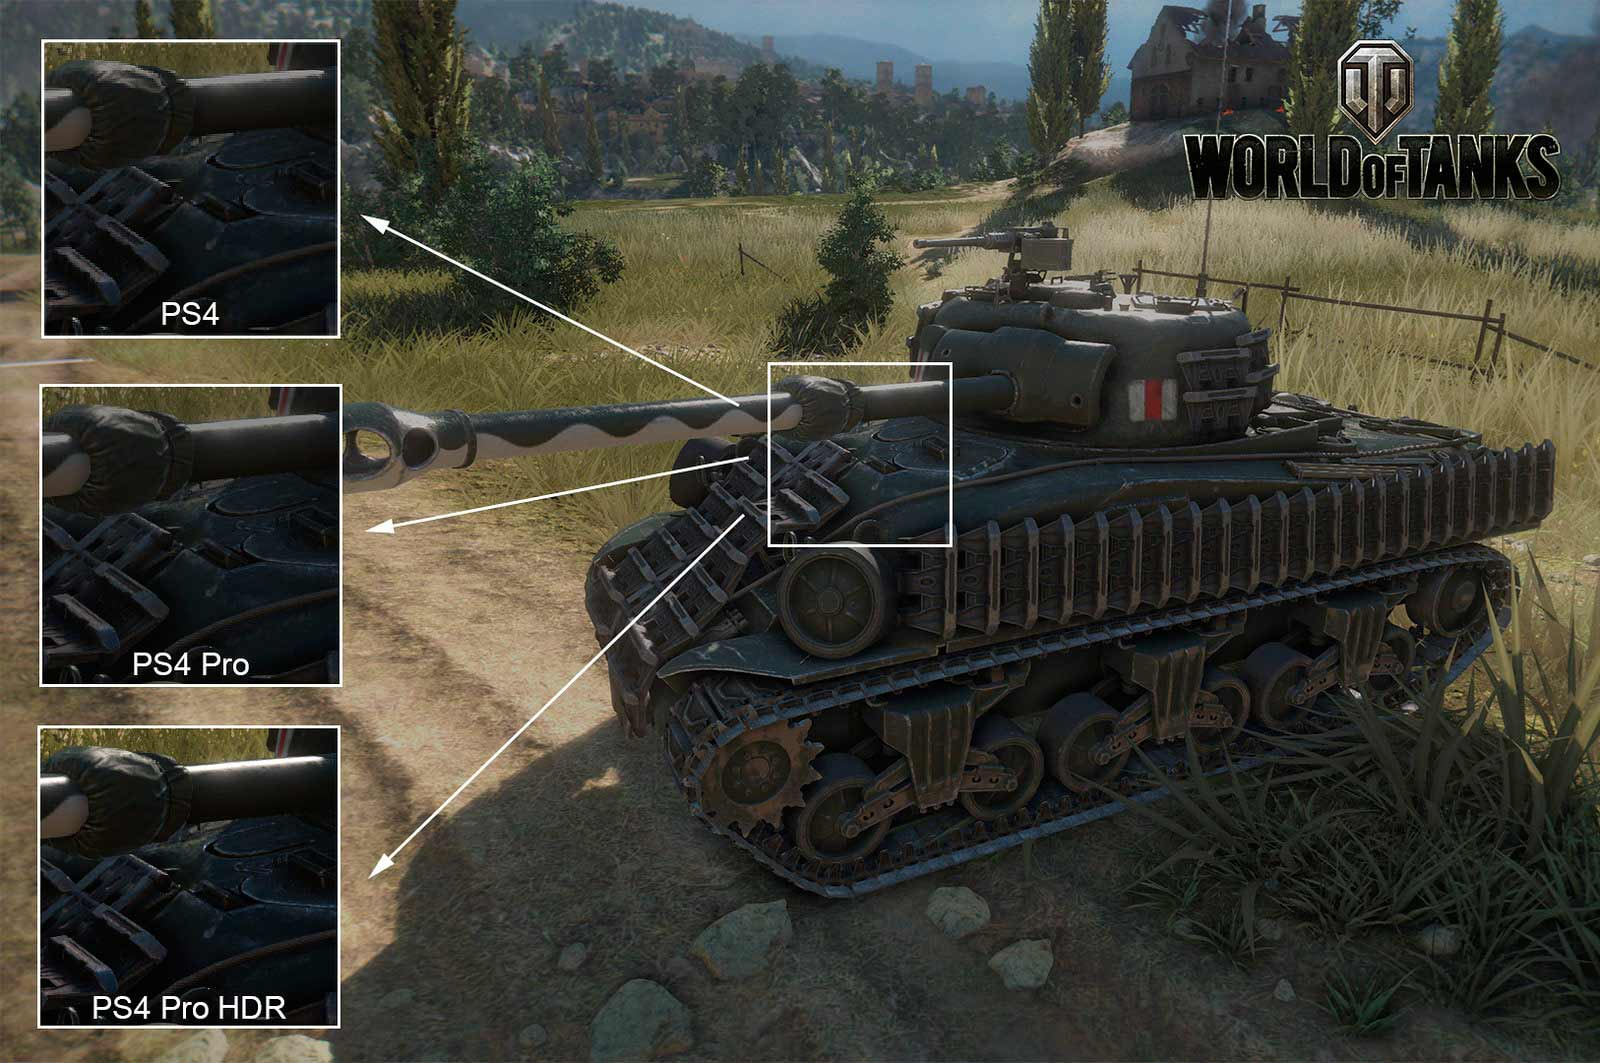 World of Tanks HDR